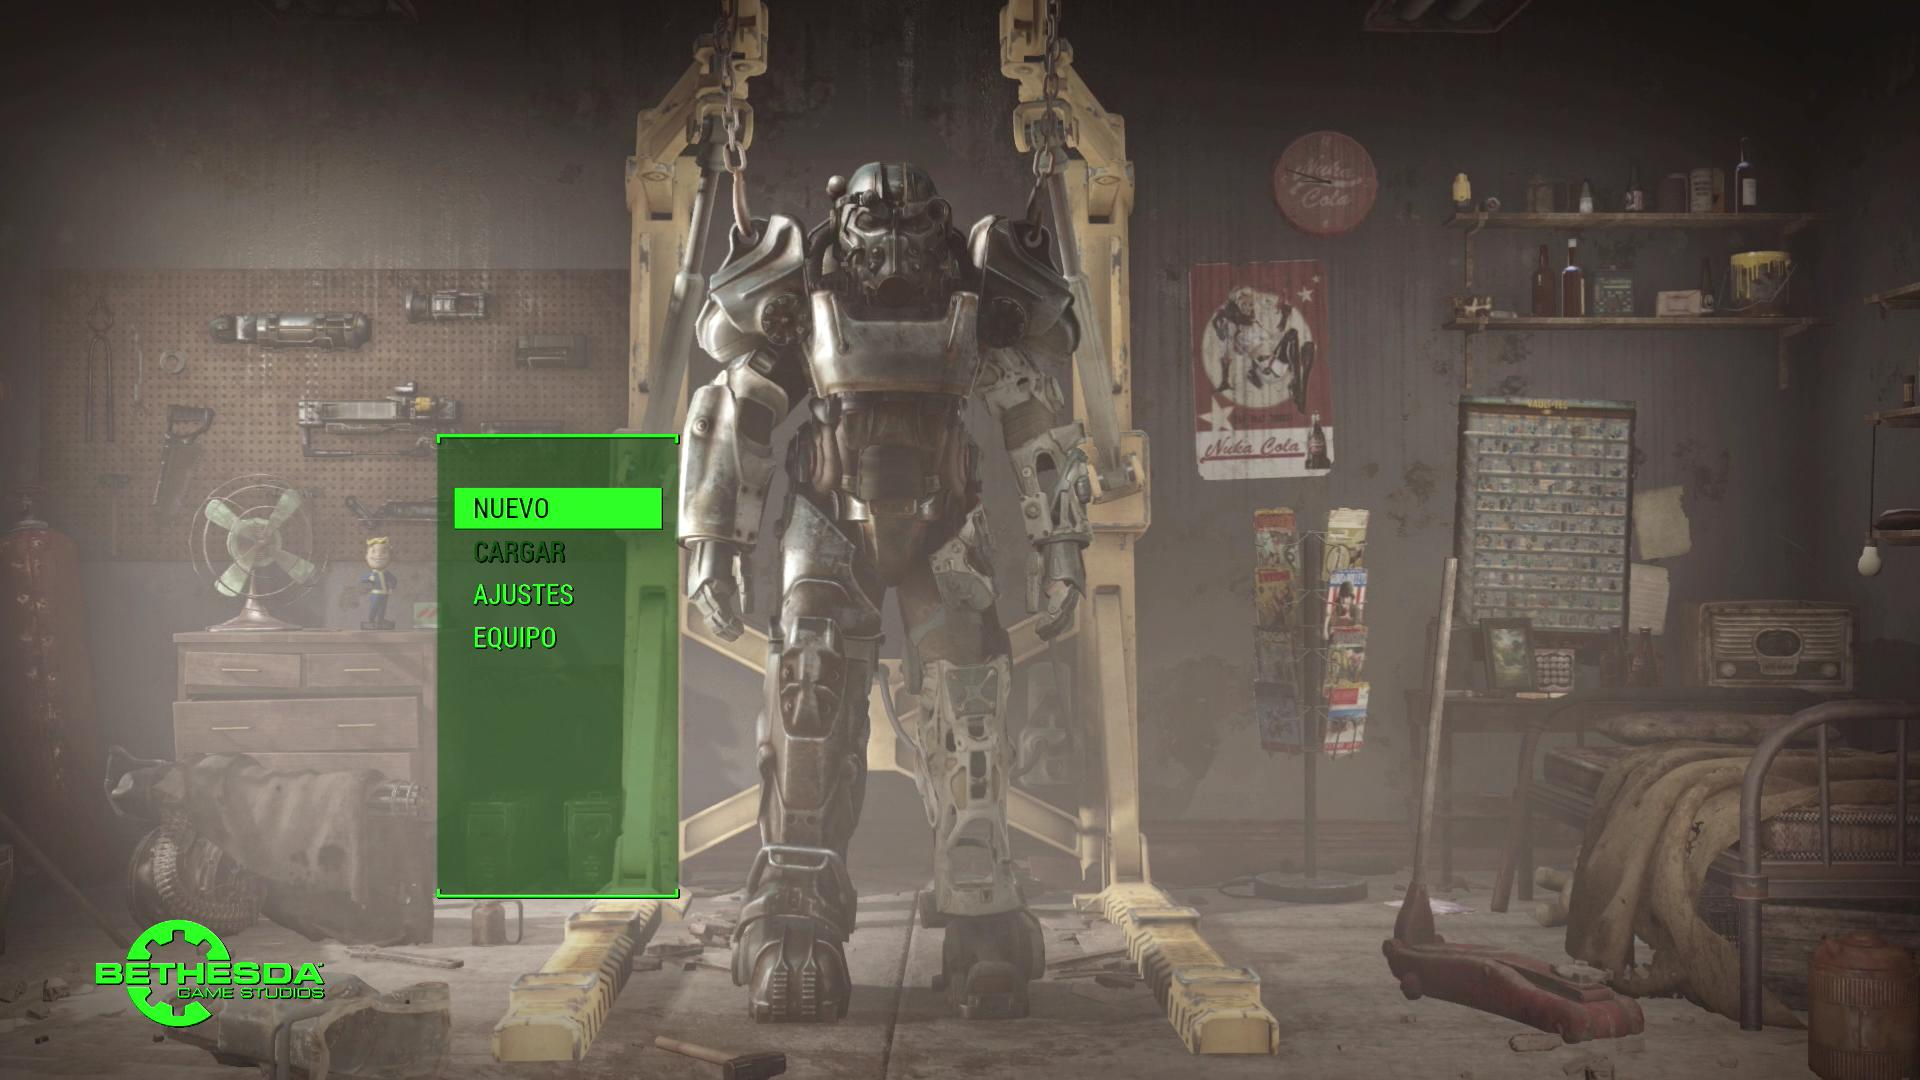 Massive Fallout 4 Leak : Gameplay Details, Footage And Screenshots